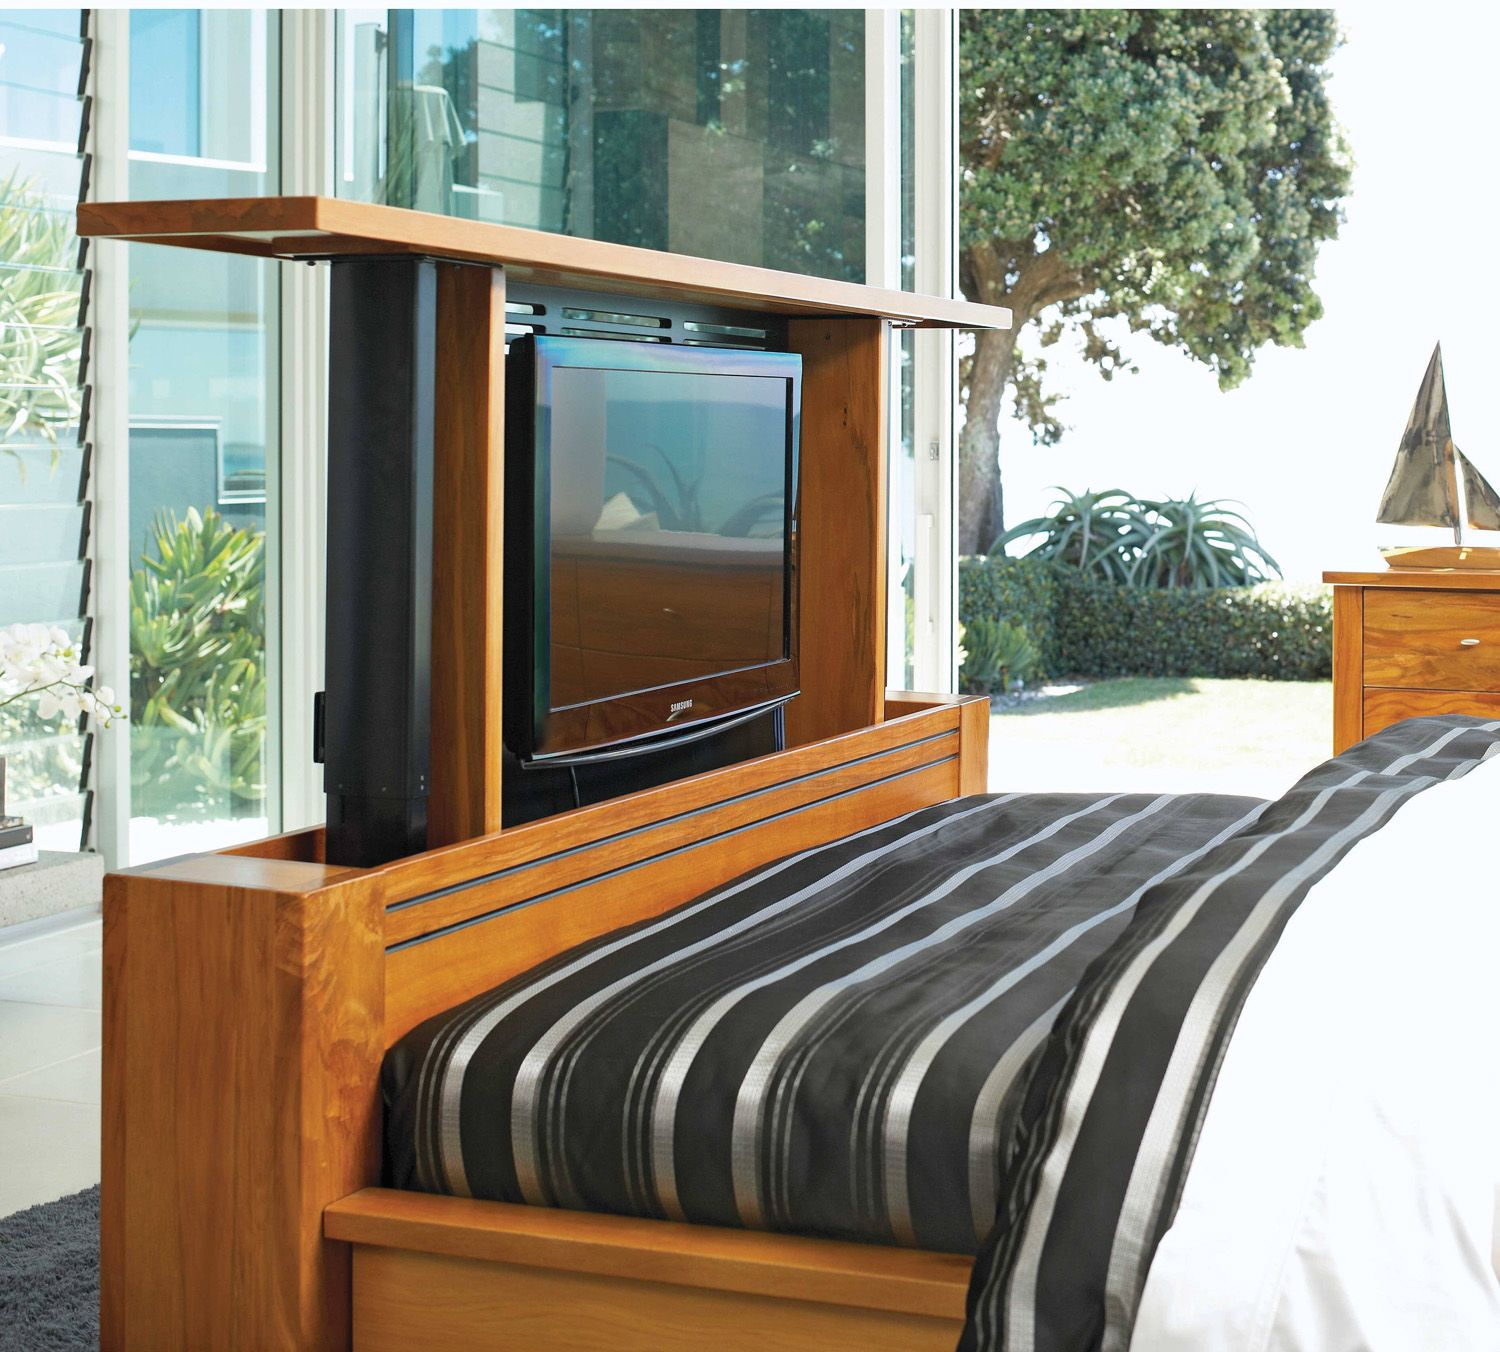 Harvey norman vision rimu queen tv bed frame by ezirest harvey norman vision rimu queen tv bed frame by ezirest furniture jeuxipadfo Choice Image